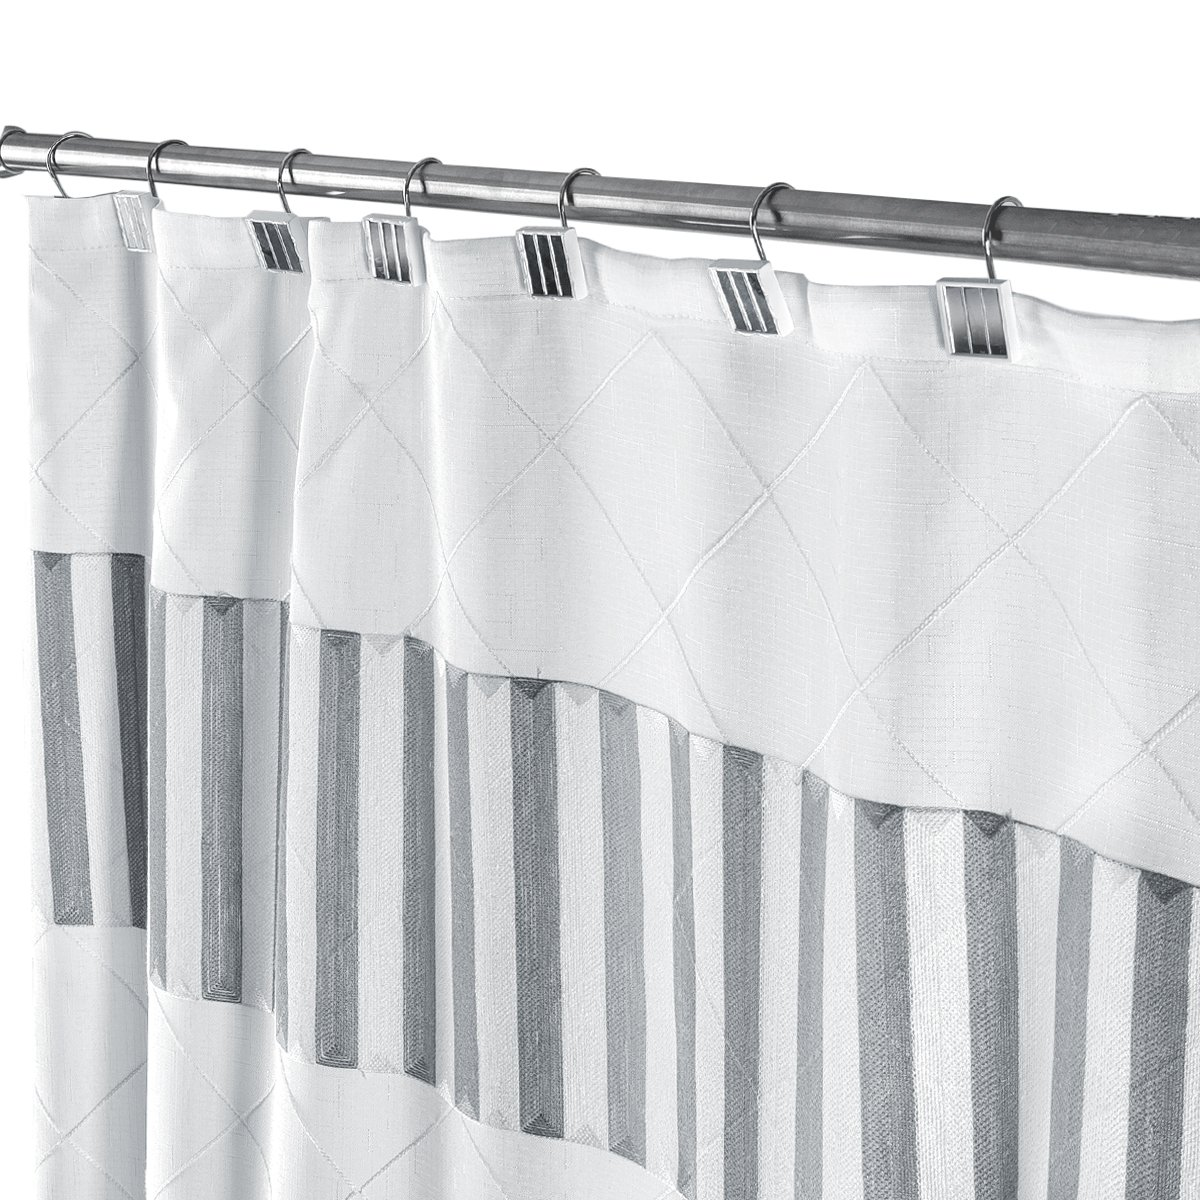 Quilted Mirror Decorative Fabric Shower Curtain White, Includes PEVA Shower Curtain Liner, Mildew Resistant, 72 x 72 inch, Polyester Soft Touch Waterproof Washable Cloth Shower Curtains for Bathroom